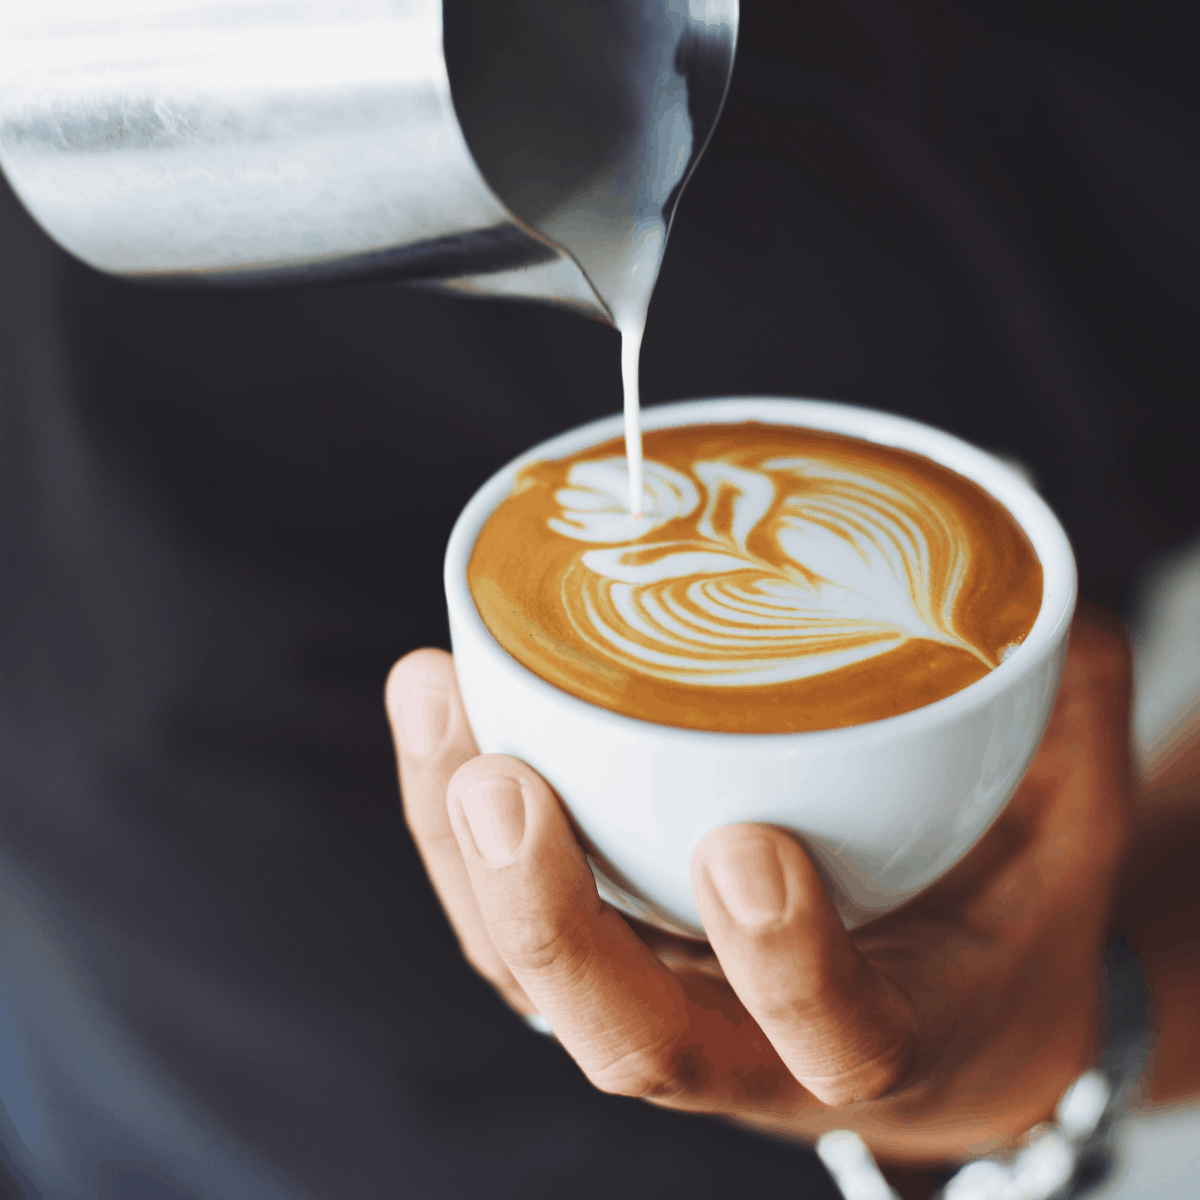 milk being poured into a coffee cup